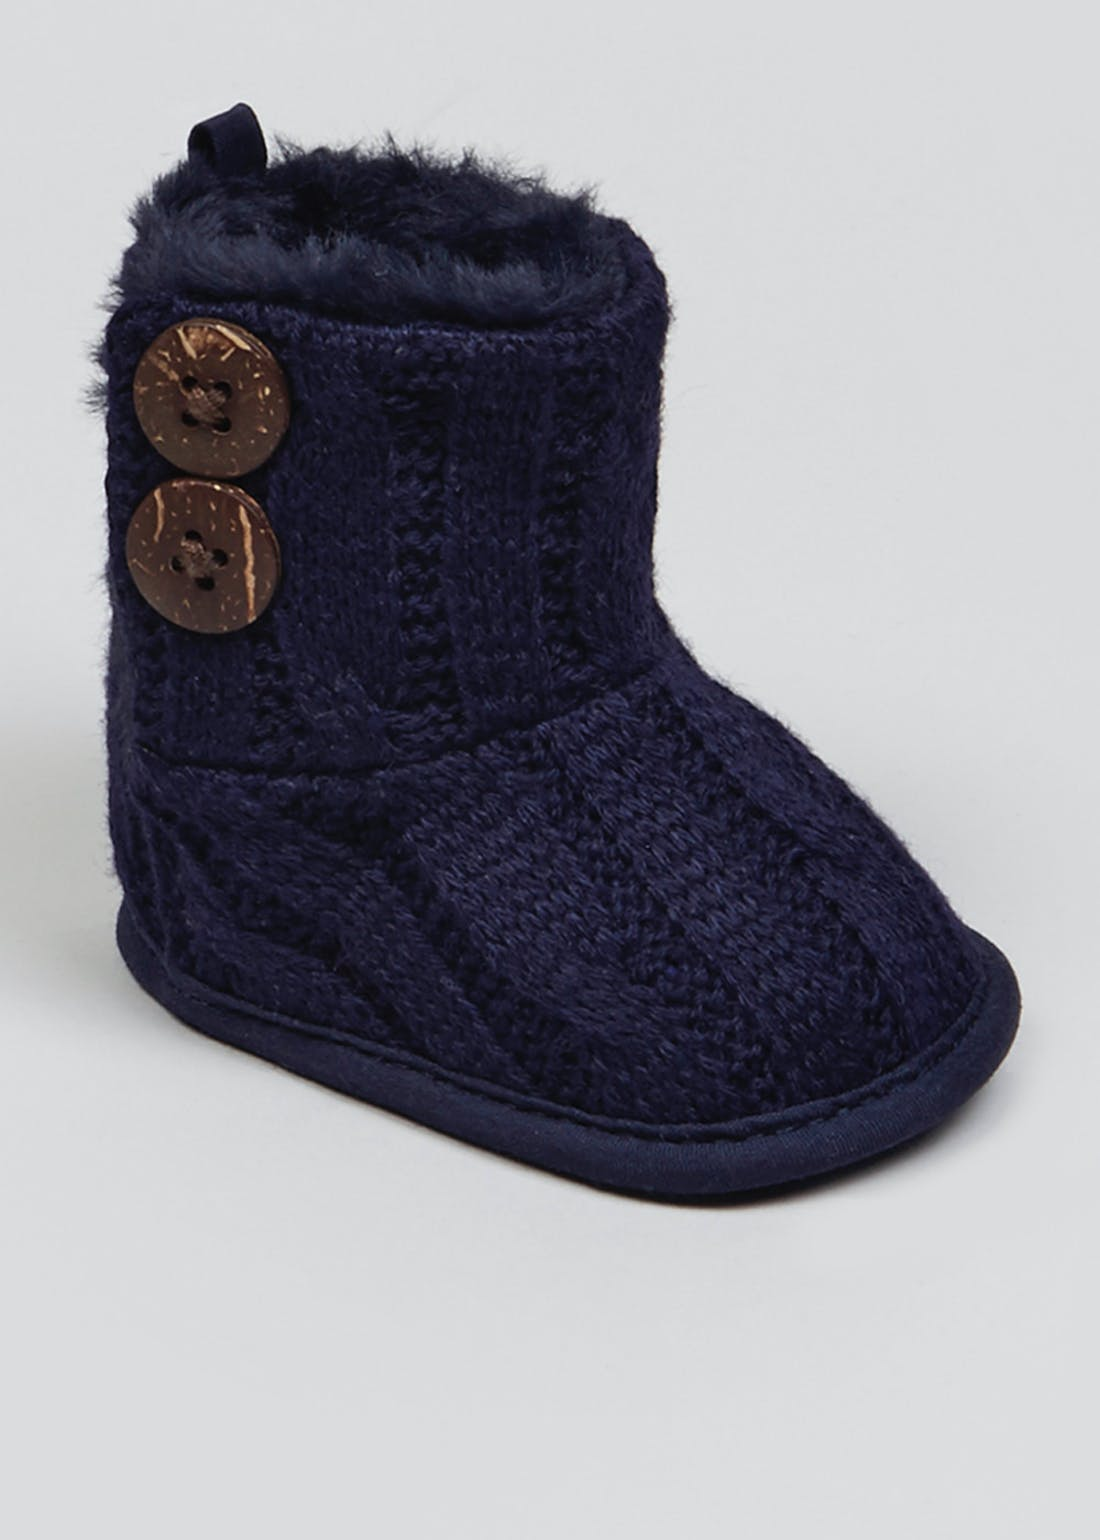 Unisex Navy Knitted Boots (Newborn-18mths)